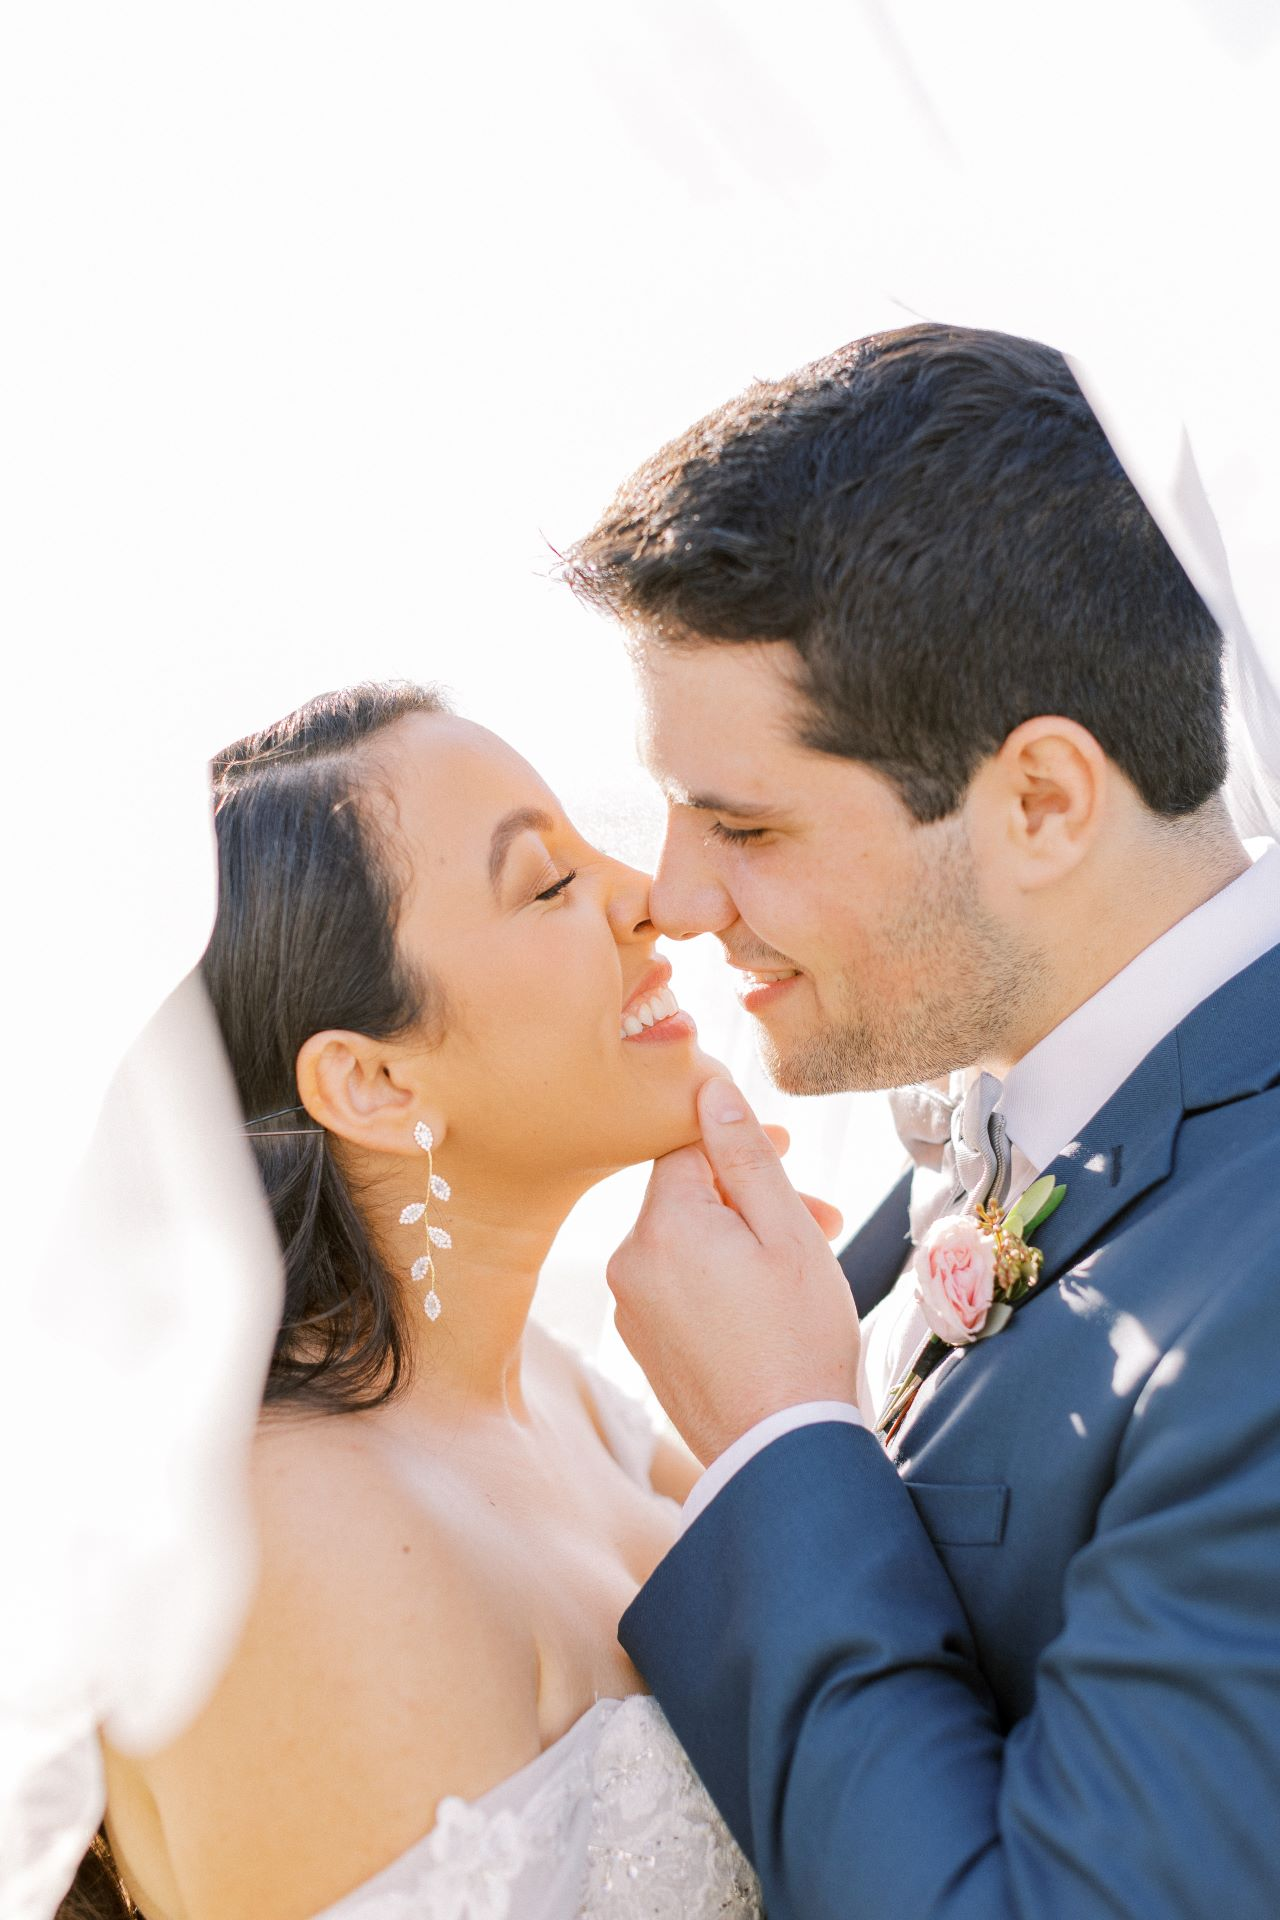 bride and groom embrace in romantic lighting